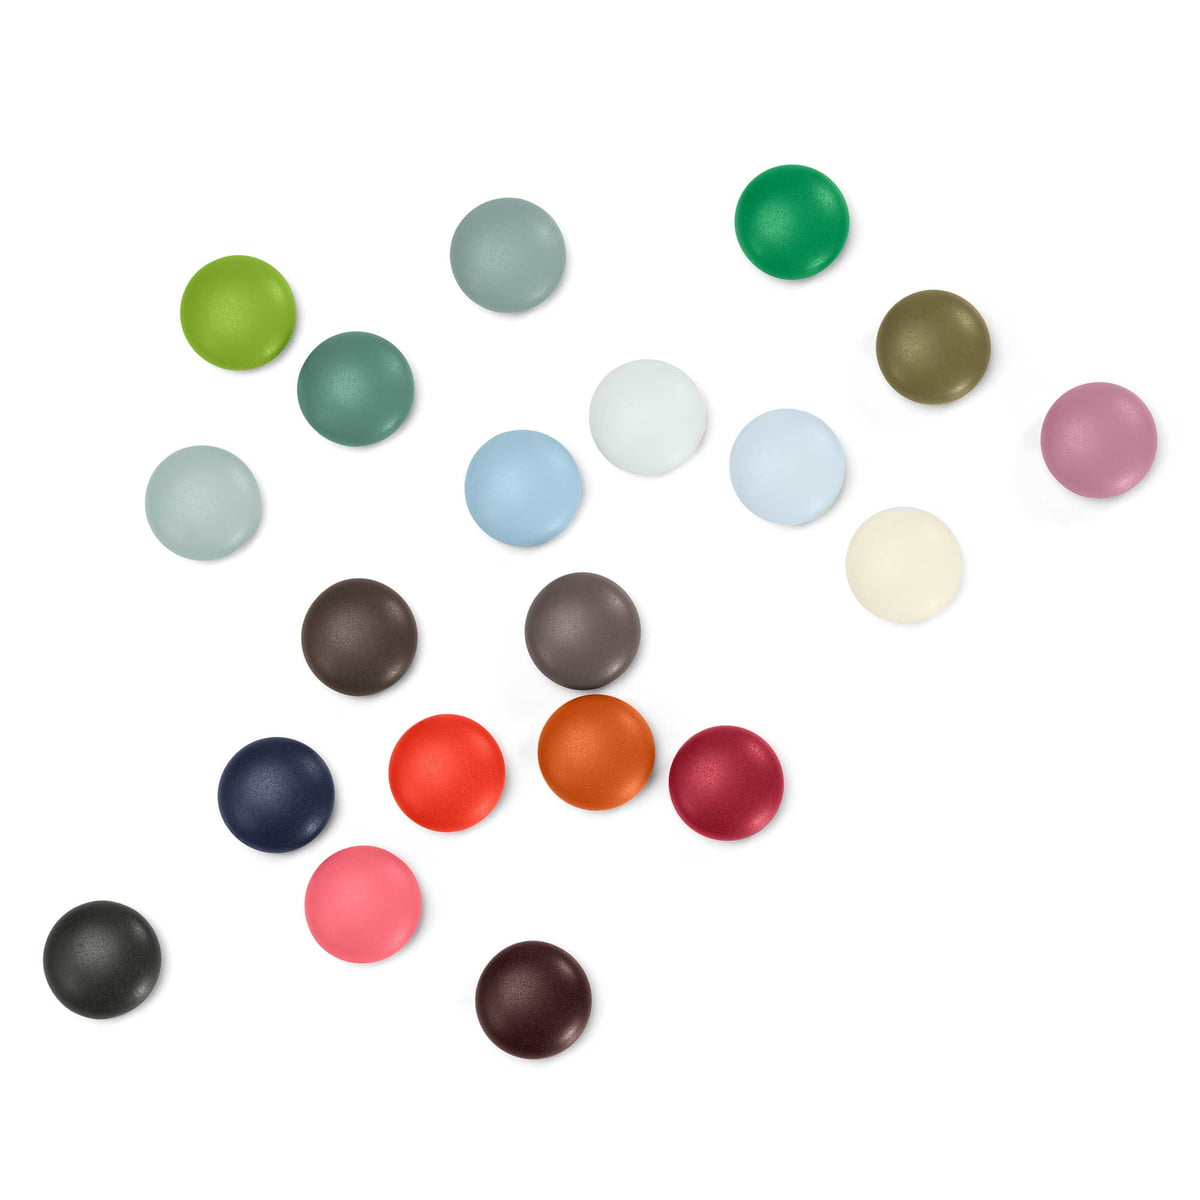 magnet dots von vitra im shop kaufen. Black Bedroom Furniture Sets. Home Design Ideas